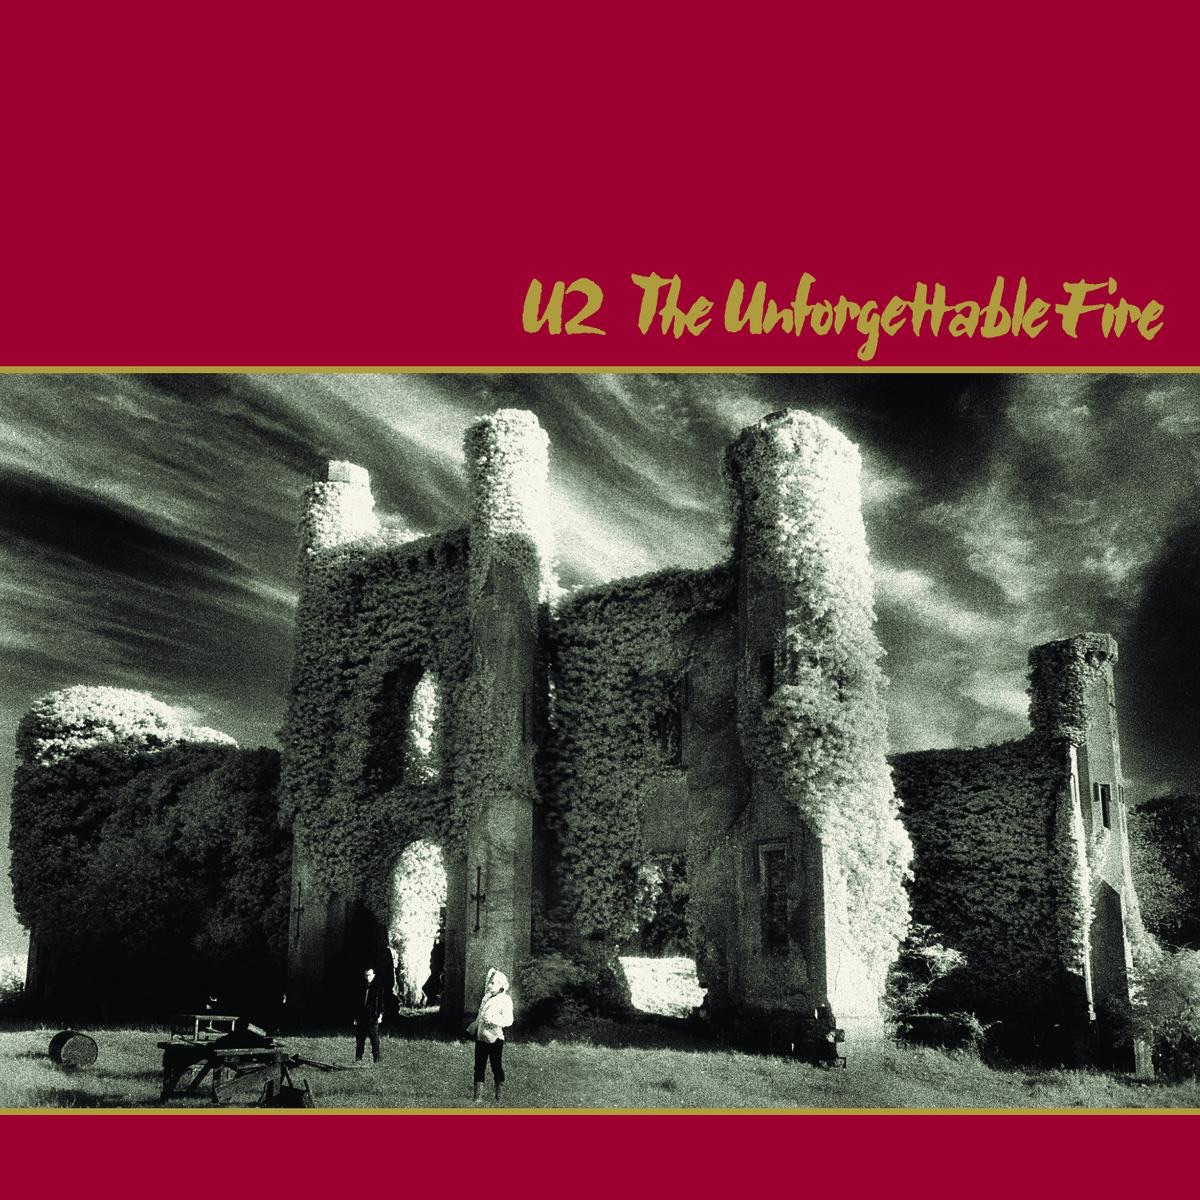 The Unforgettable Fire Remastered Deluxe Version U2 CD cover